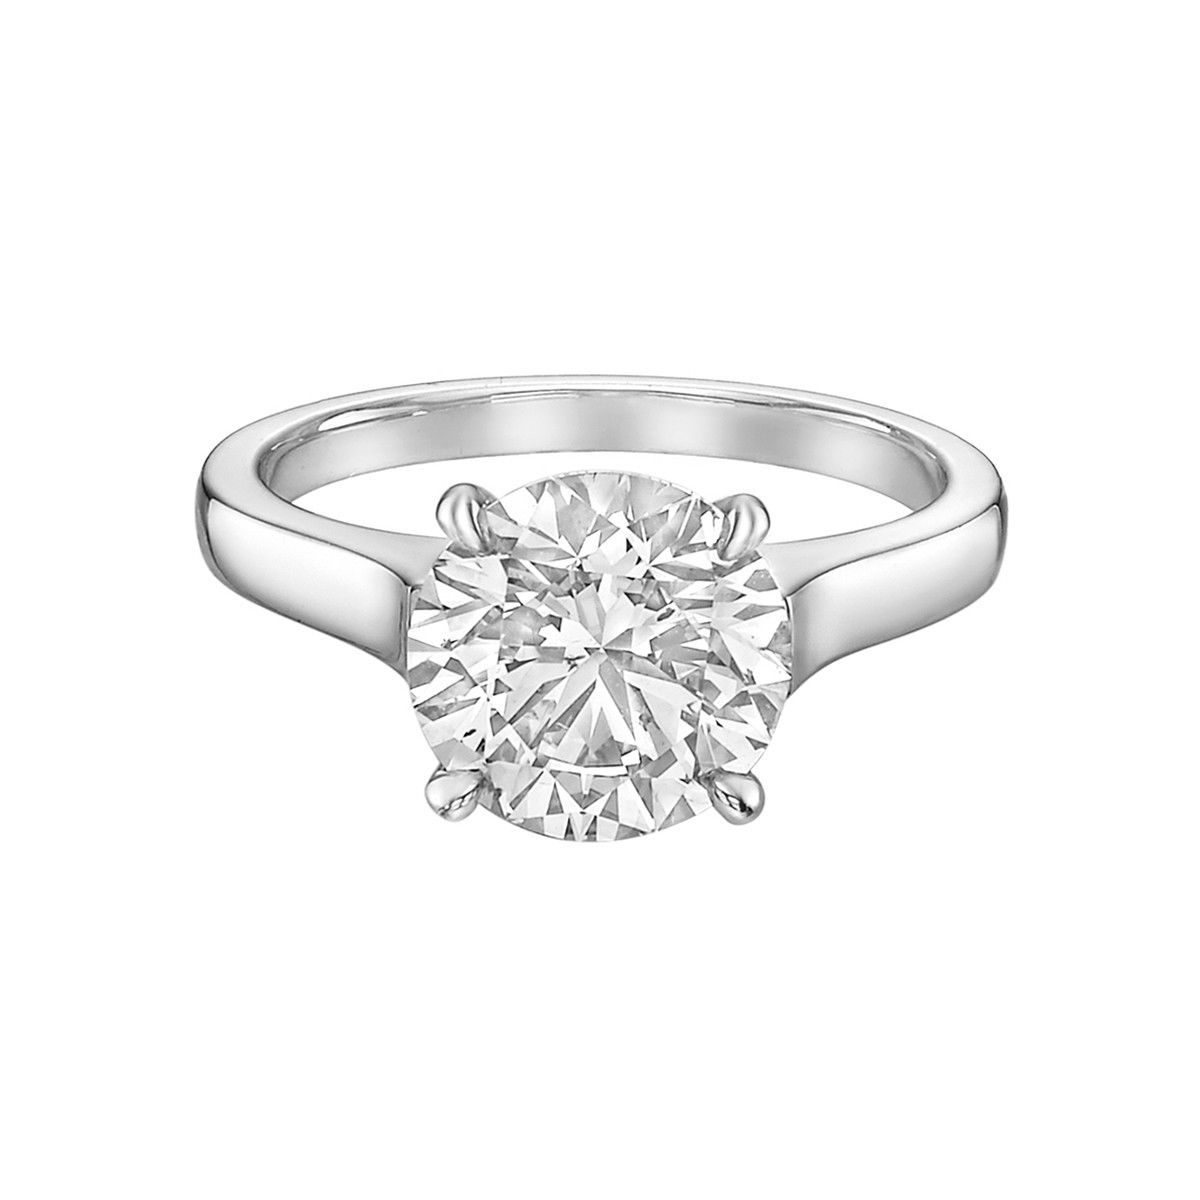 2.71ct Round Brilliant Diamond Solitaire Ring